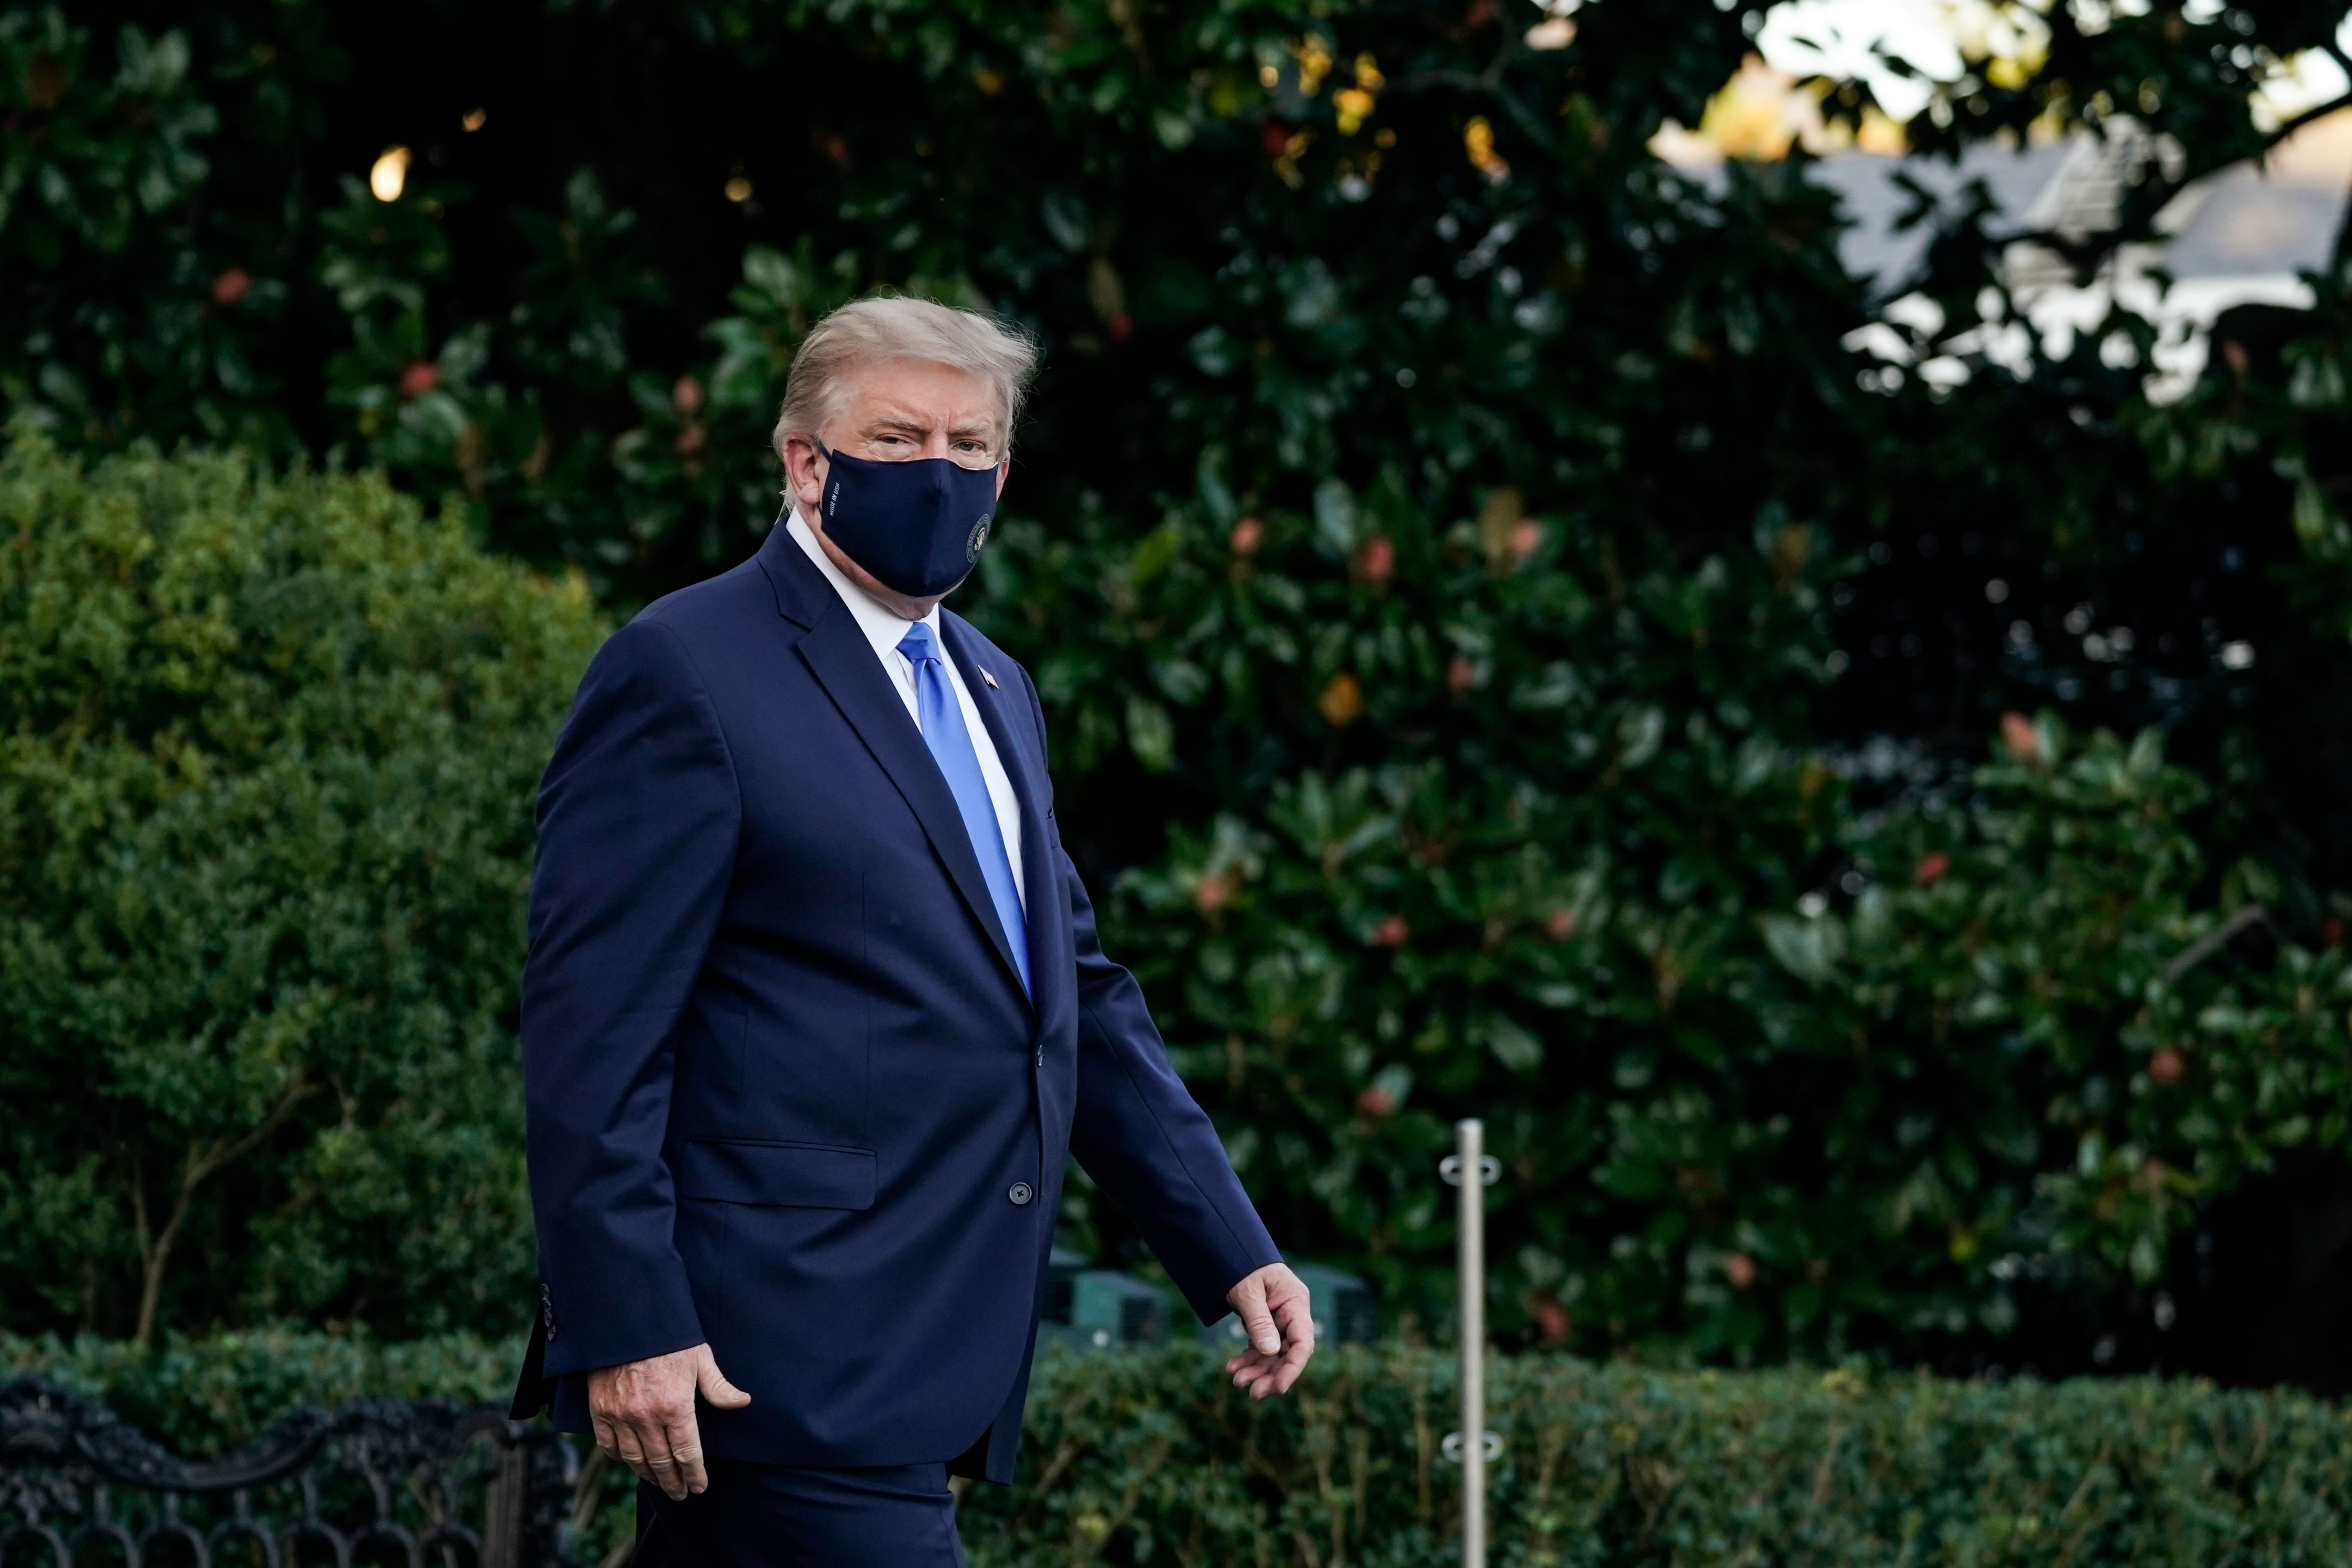 Then US President Donald Trump leaves the White House for Walter Reed medical center on October 2, 2020, after his Covid-19 diagnosis.